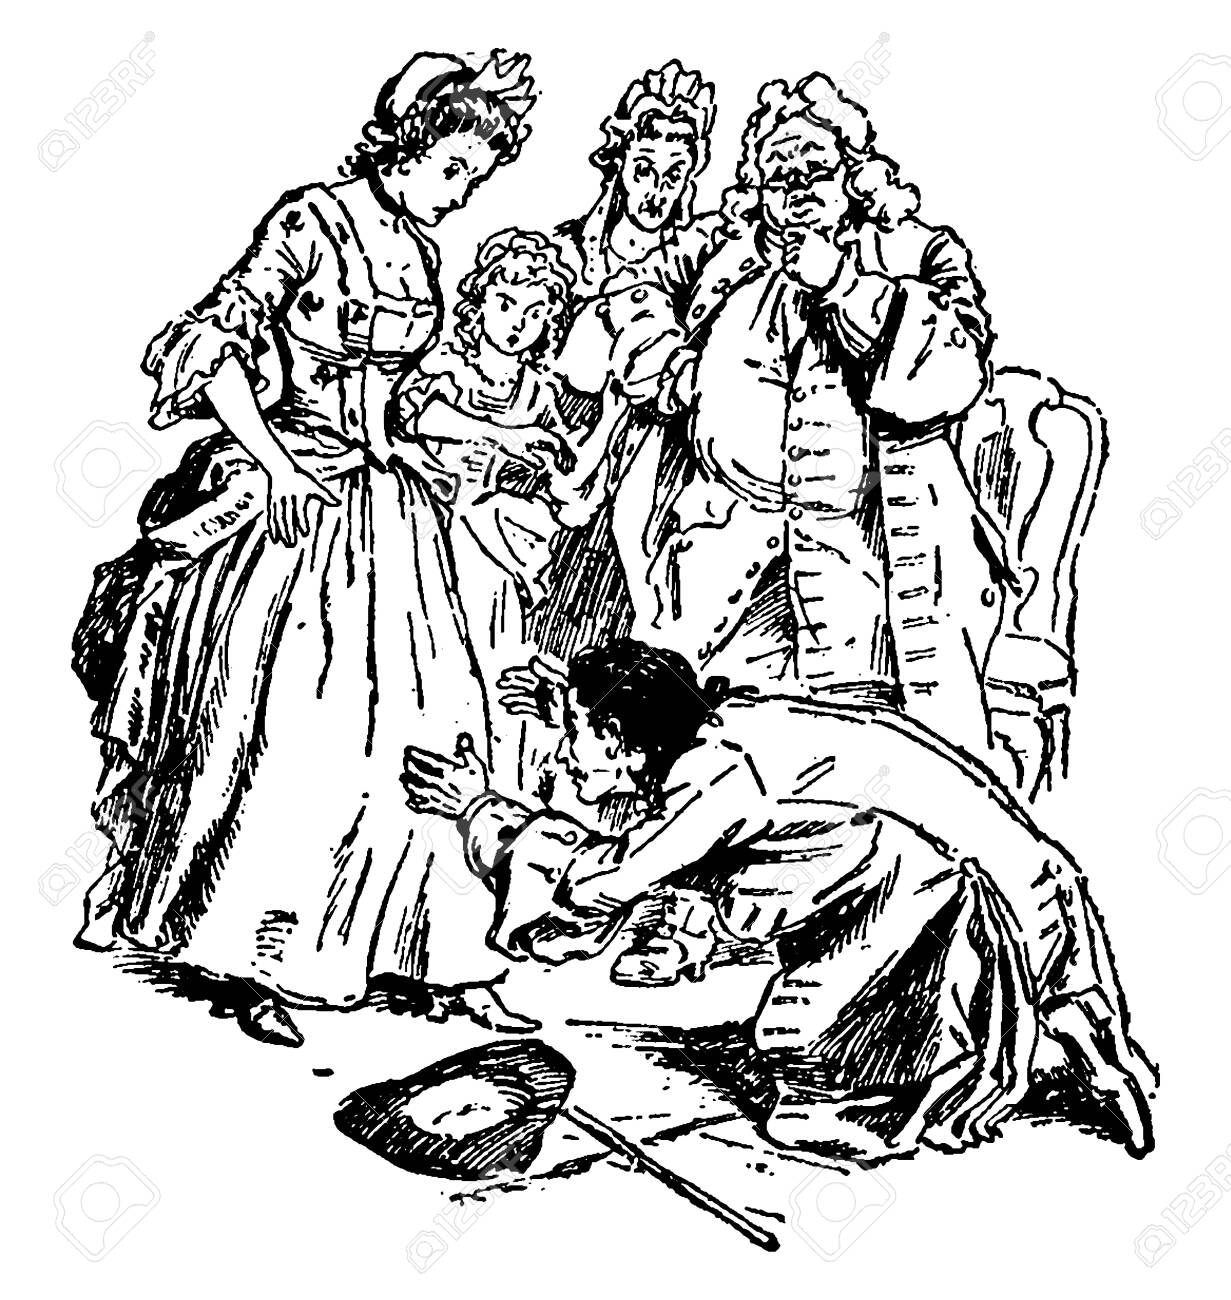 Gulliver Stoops to Wife, this scene shows a family, and a man stoops down at his wife's knees and other family members standing and looking at him, vintage line drawing or engraving illustration - 152633801